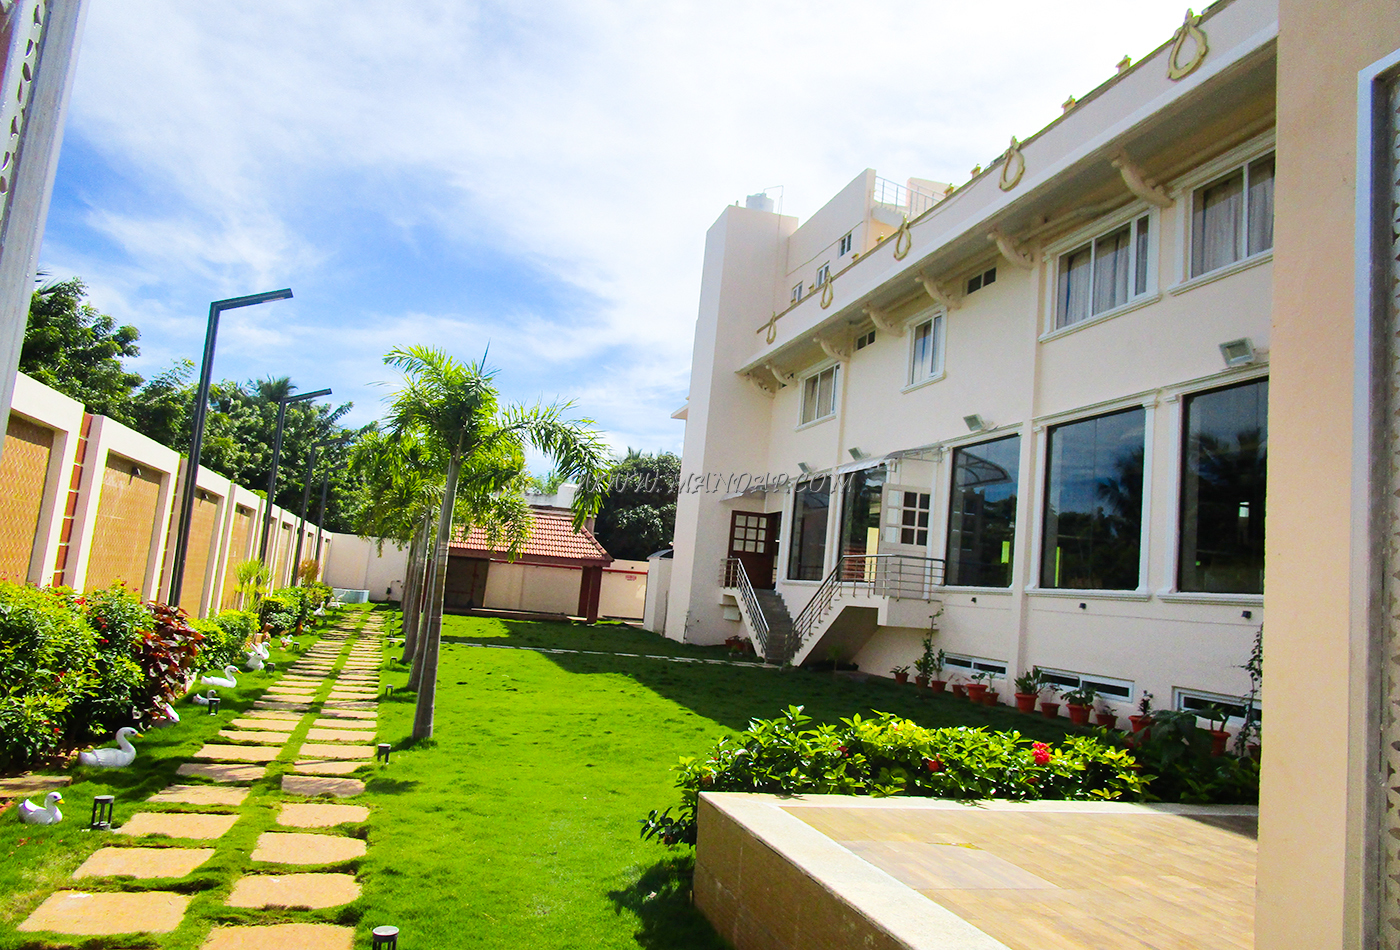 Find the availability of the Sri Ganesh Open Lawn in Kalapet, Pondicherry and avail special offers